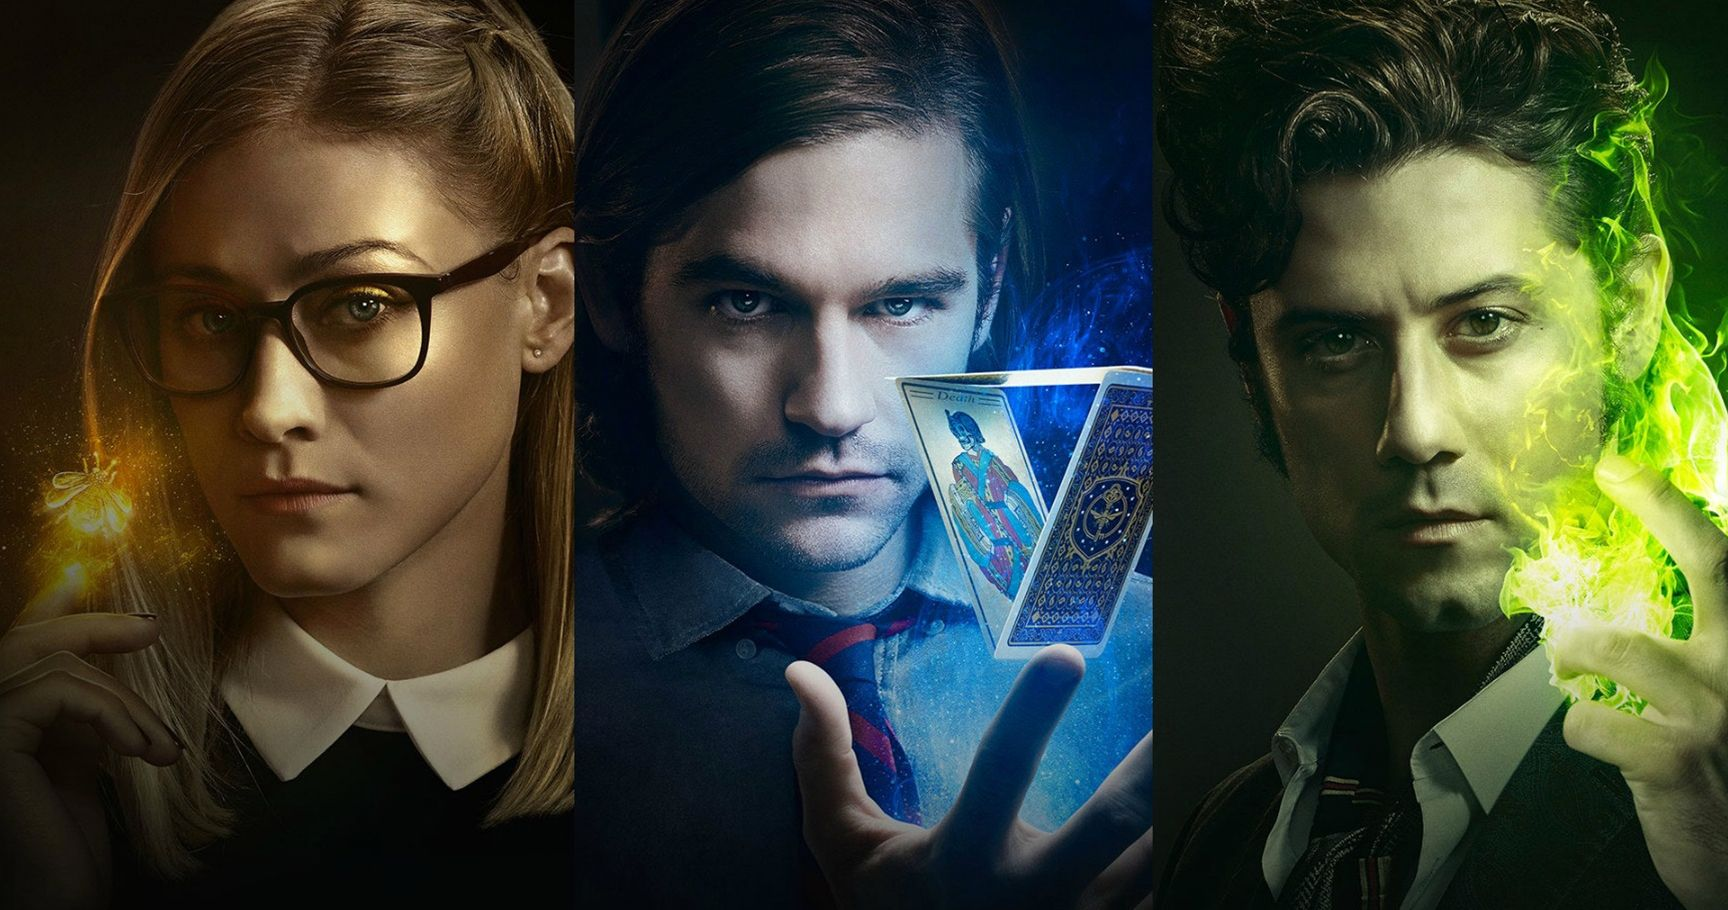 15 Burning Questions We Need Answered In Season 3 Of 'The Magicians'